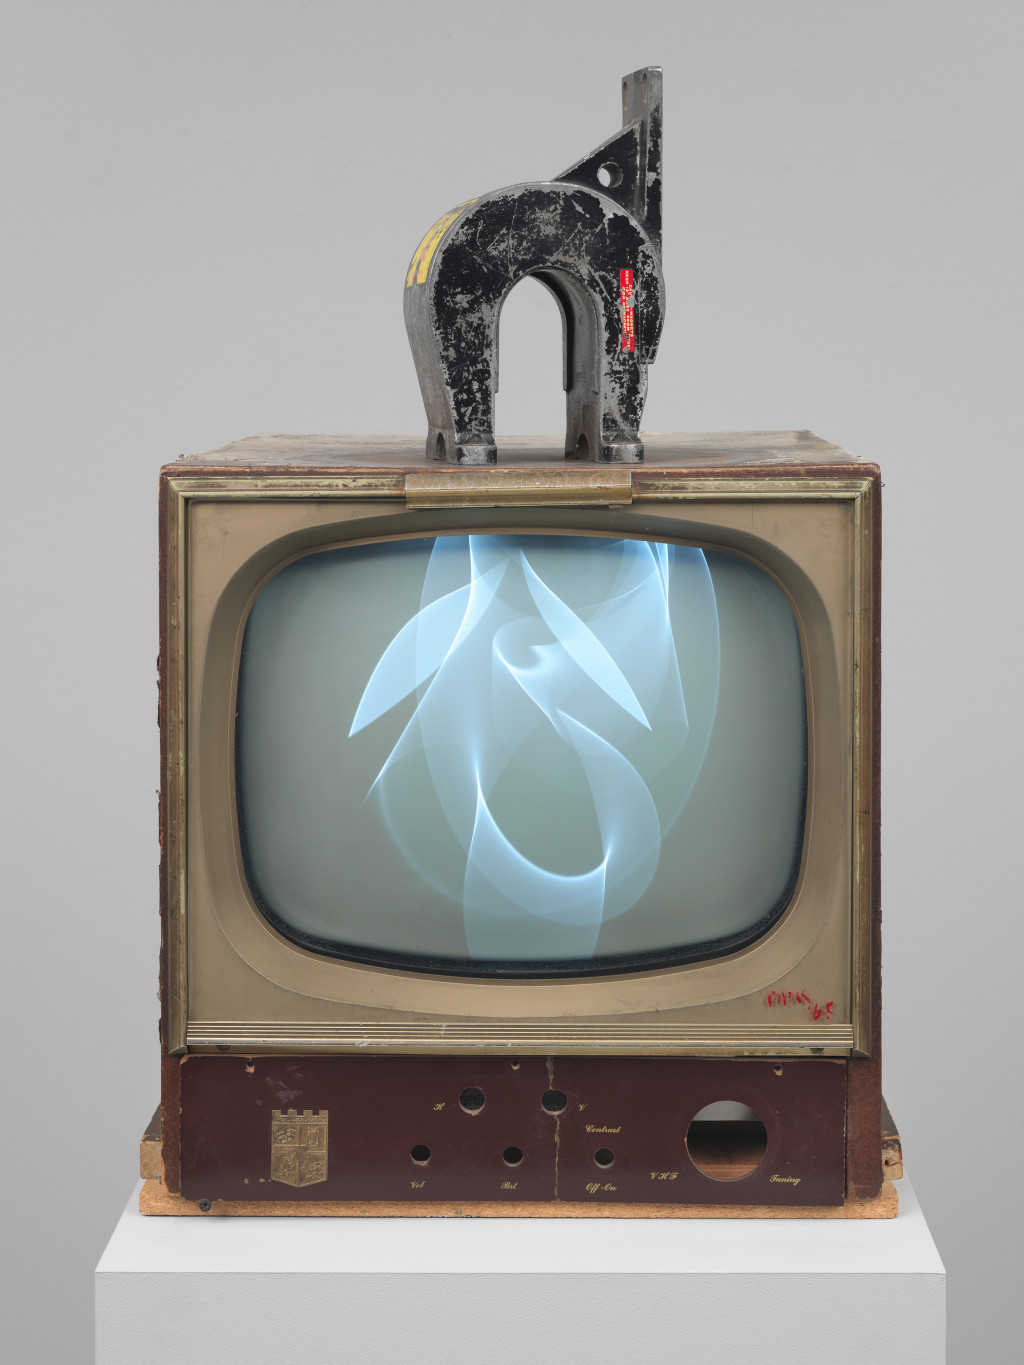 Nam June Paik, Magnet TV, 1965, Whitney Museum of American Art, New York, Purchase, with funds from Dieter Rosenkranz, 86.60 a-b. © The Estate of Nam June Paik